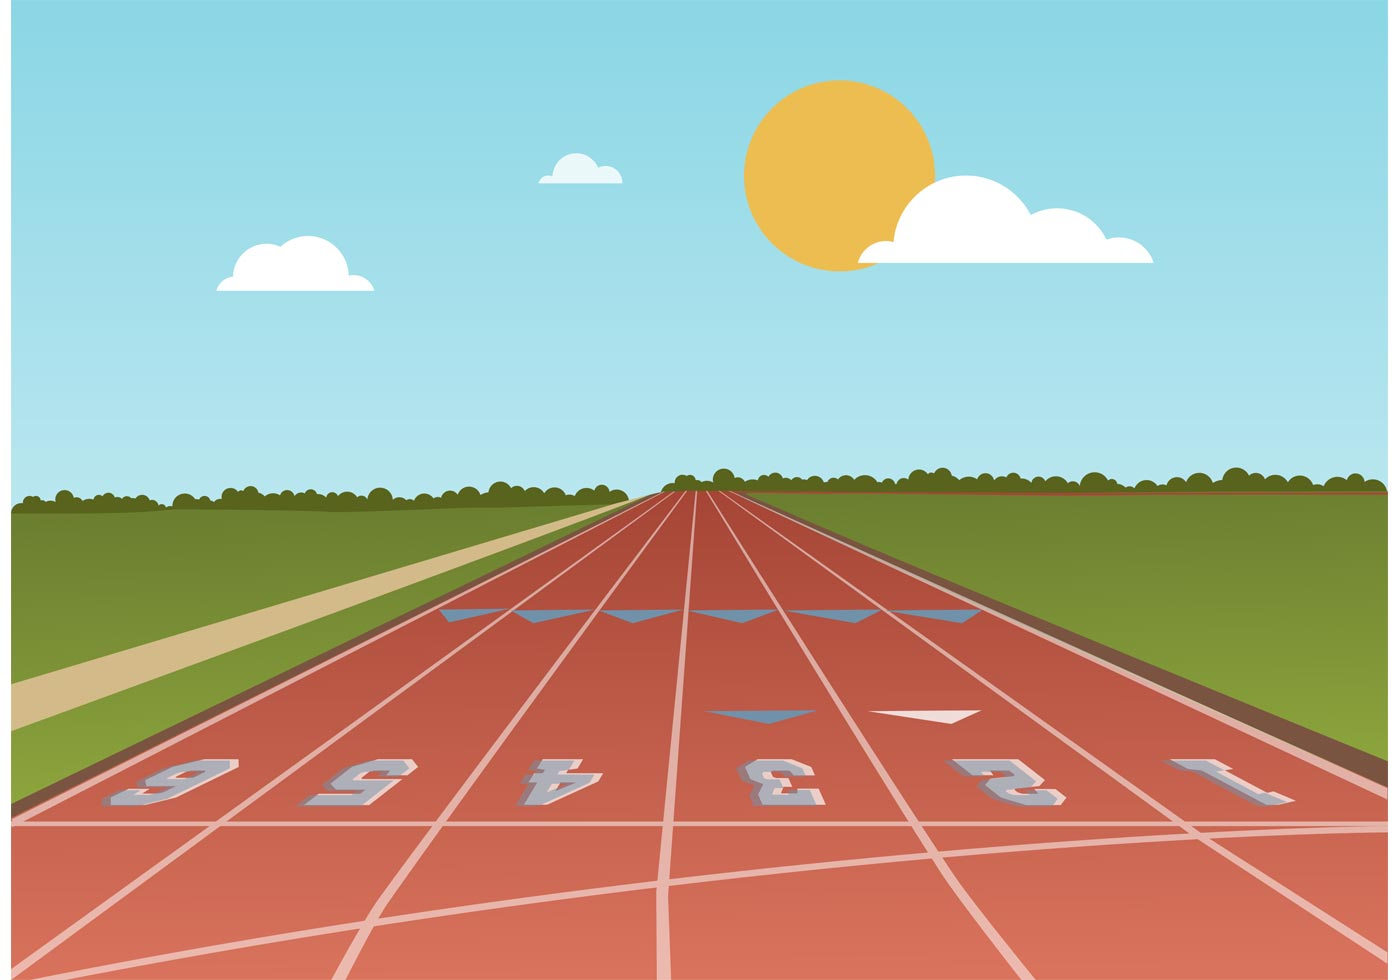 essay on running track and field It's part of a collection of essays from the new book, night running  i was a  good-field, no-hit sparkplug softball player  the weather got colder and i moved  inside and began running at night, on the indoor track at my gym.